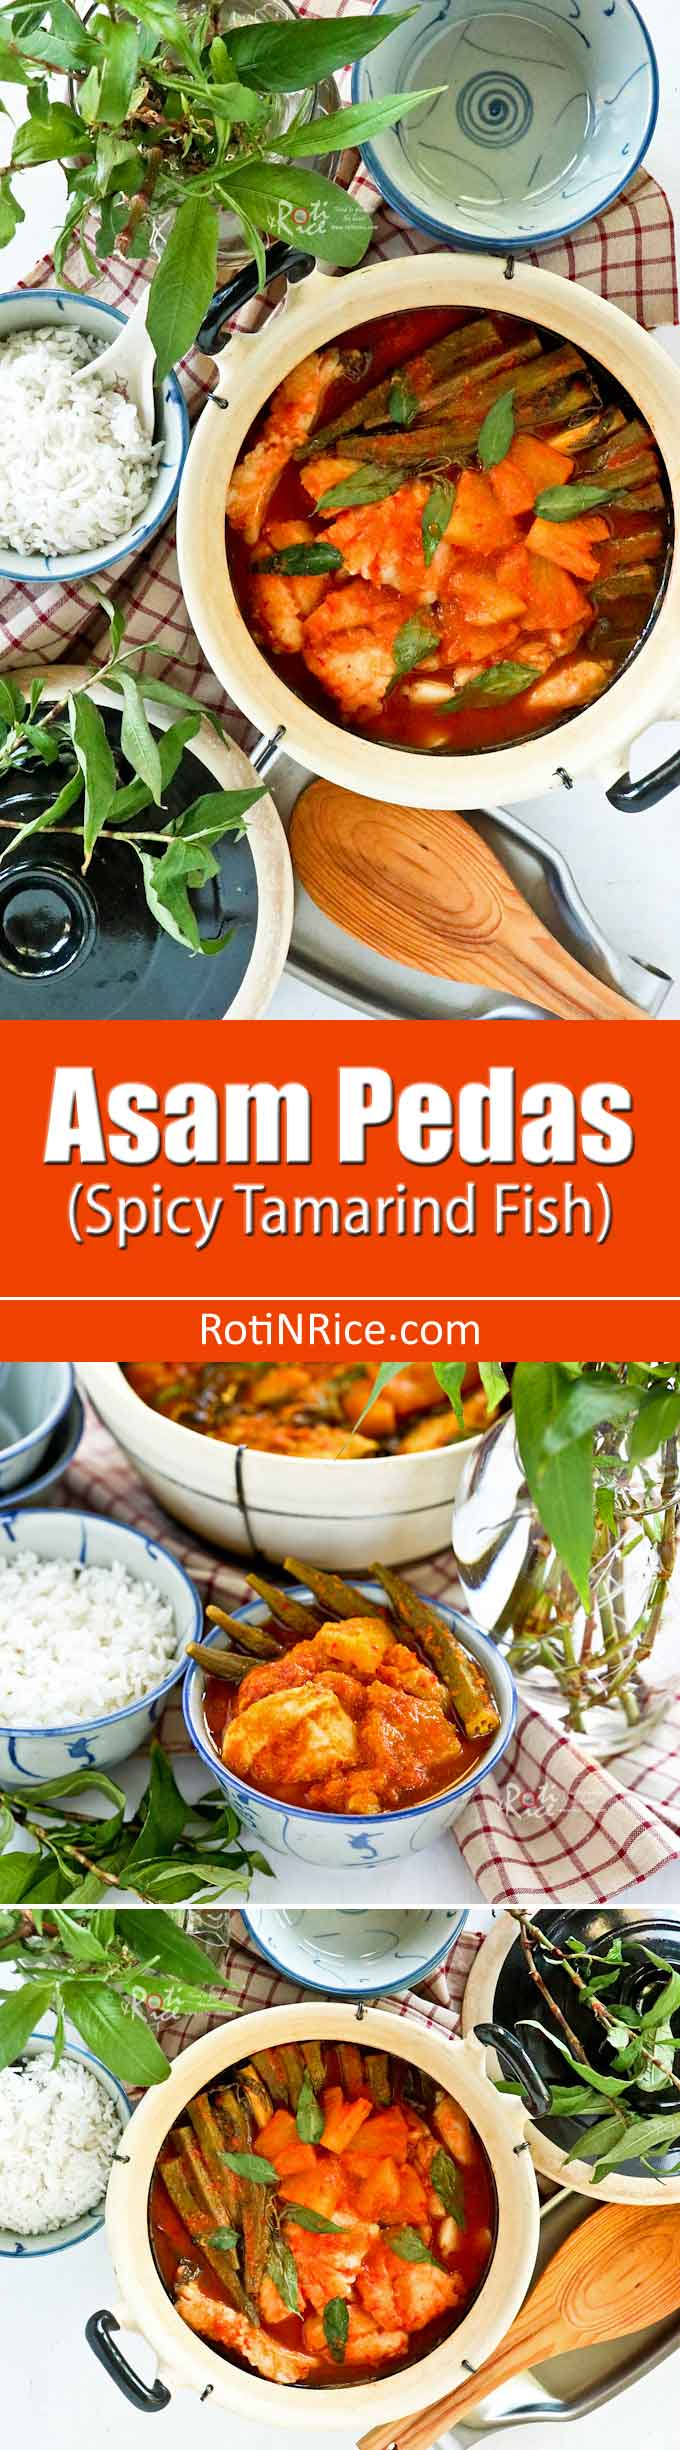 Asam Pedas (Spicy Tamarind Fish) is a spicy and tangy Malaysian fish dish that is sure to whet your appetite. Feast on it with lots of steamed rice. | RotiNRice.com